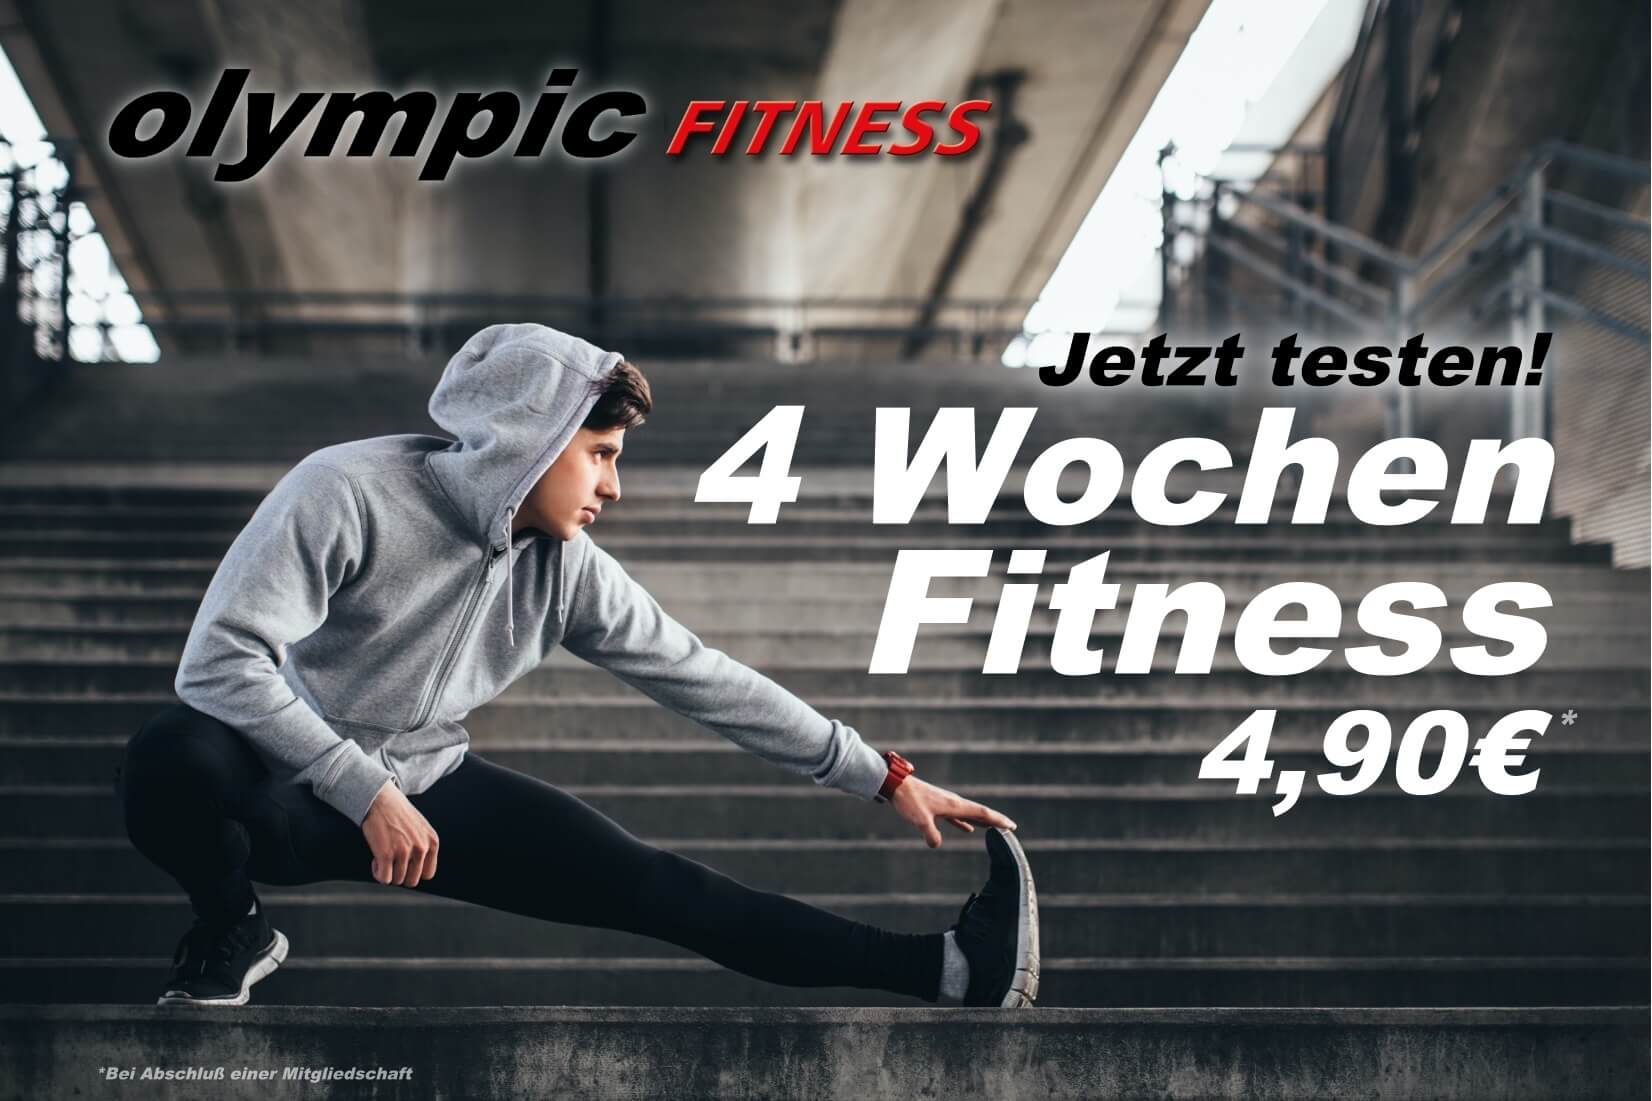 4 Wochen Fitness olympic